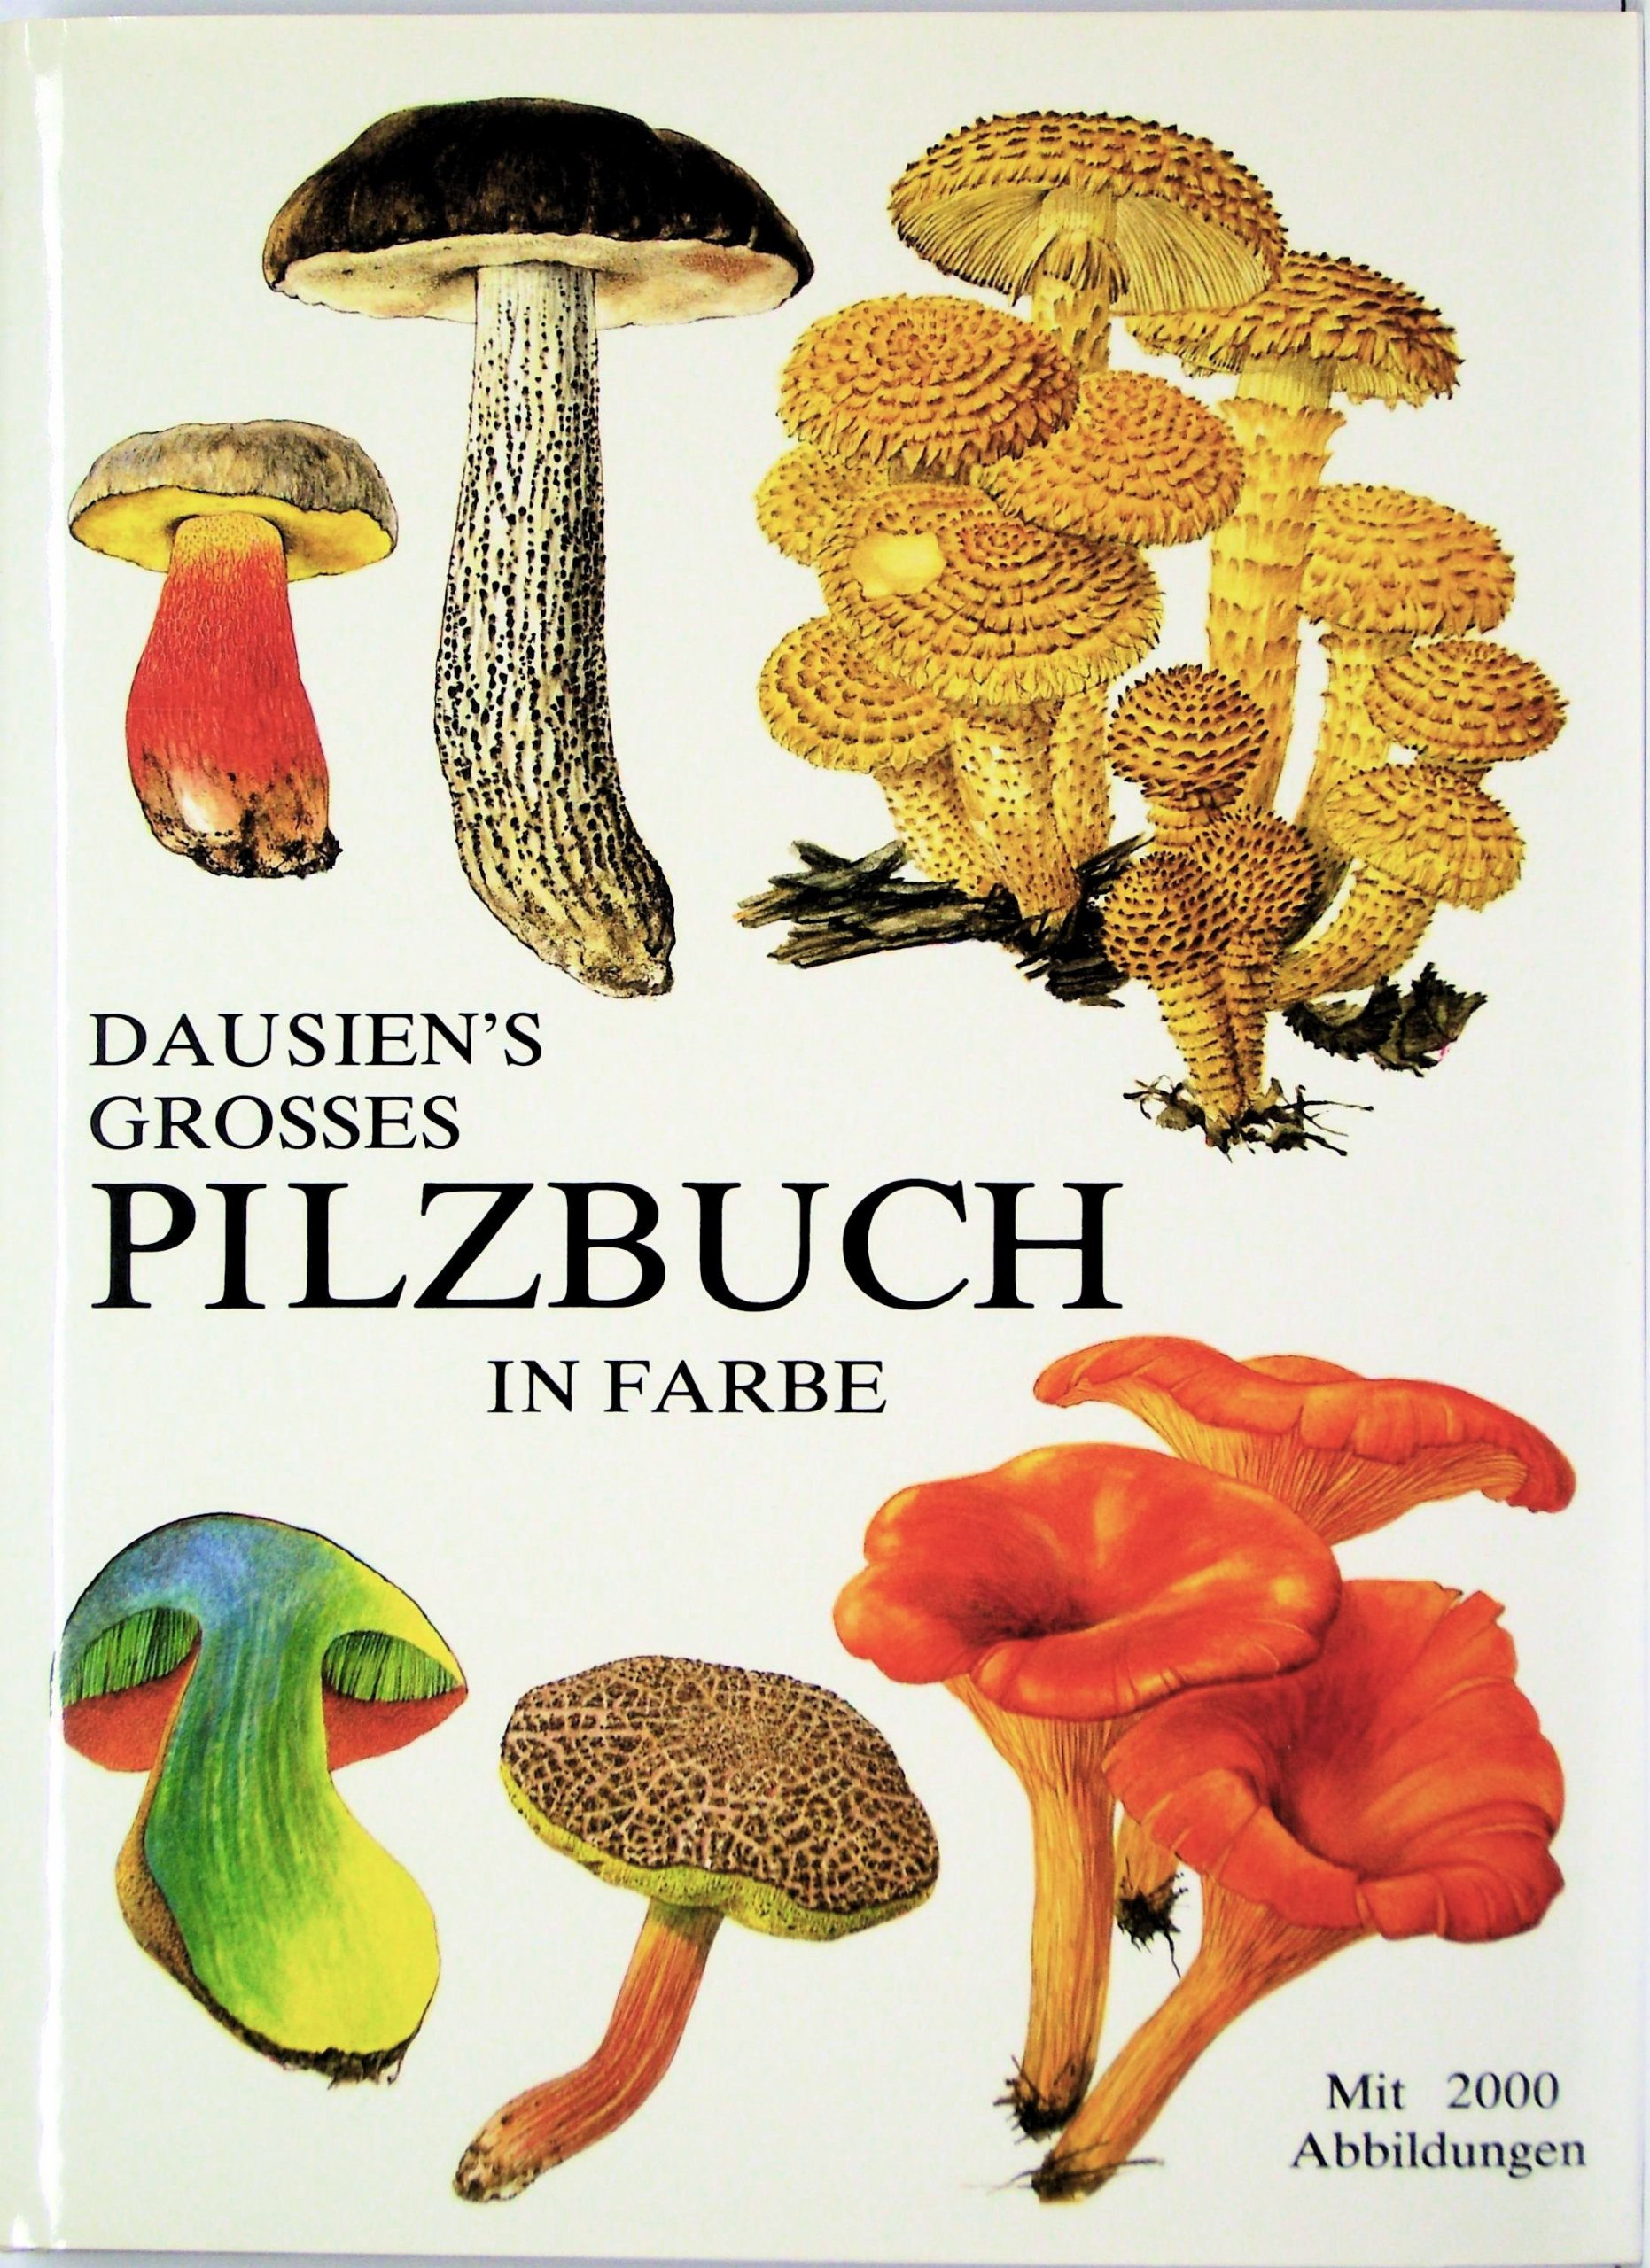 Dausiens grosses Pilzbuch in Farbe